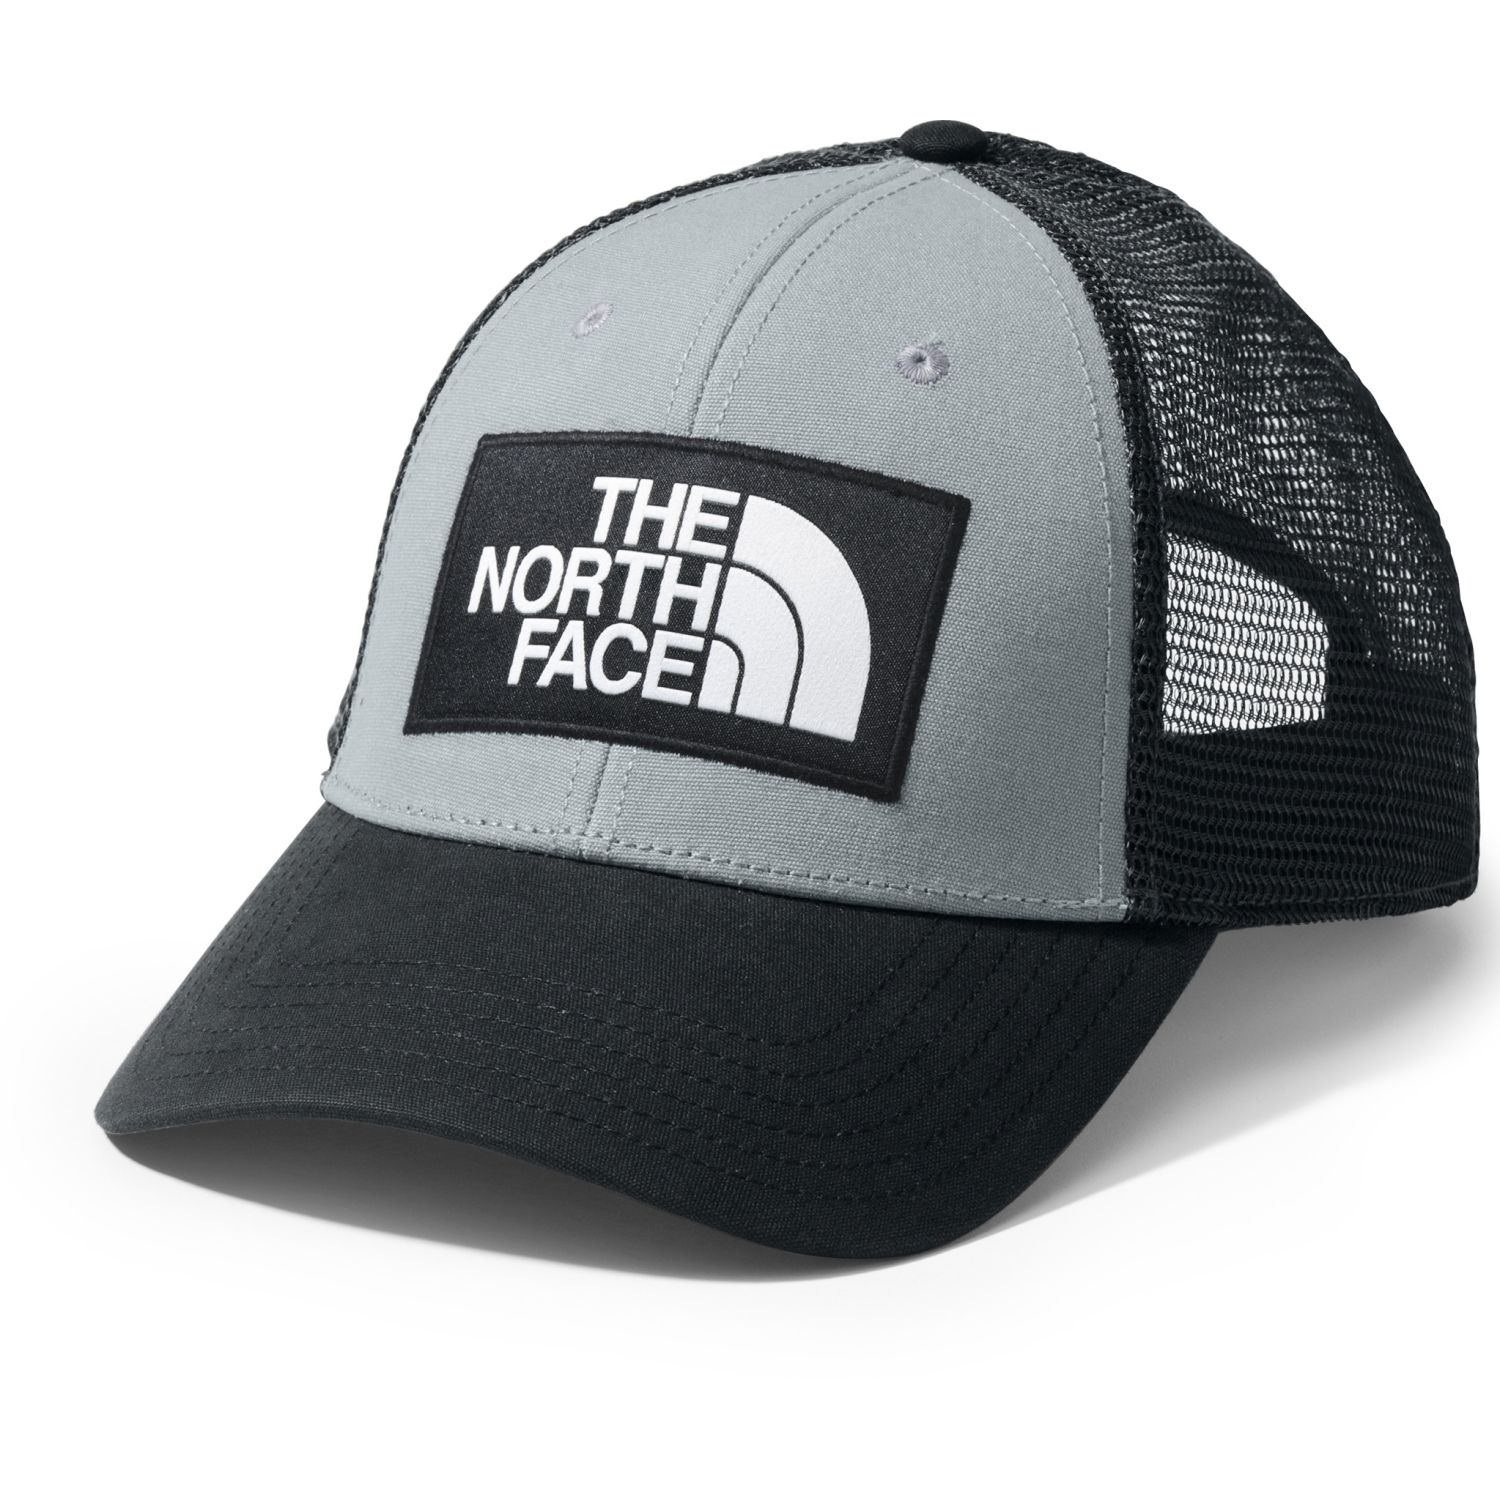 The North Face Mudder Trucker Hat Gris Chullos y gorros